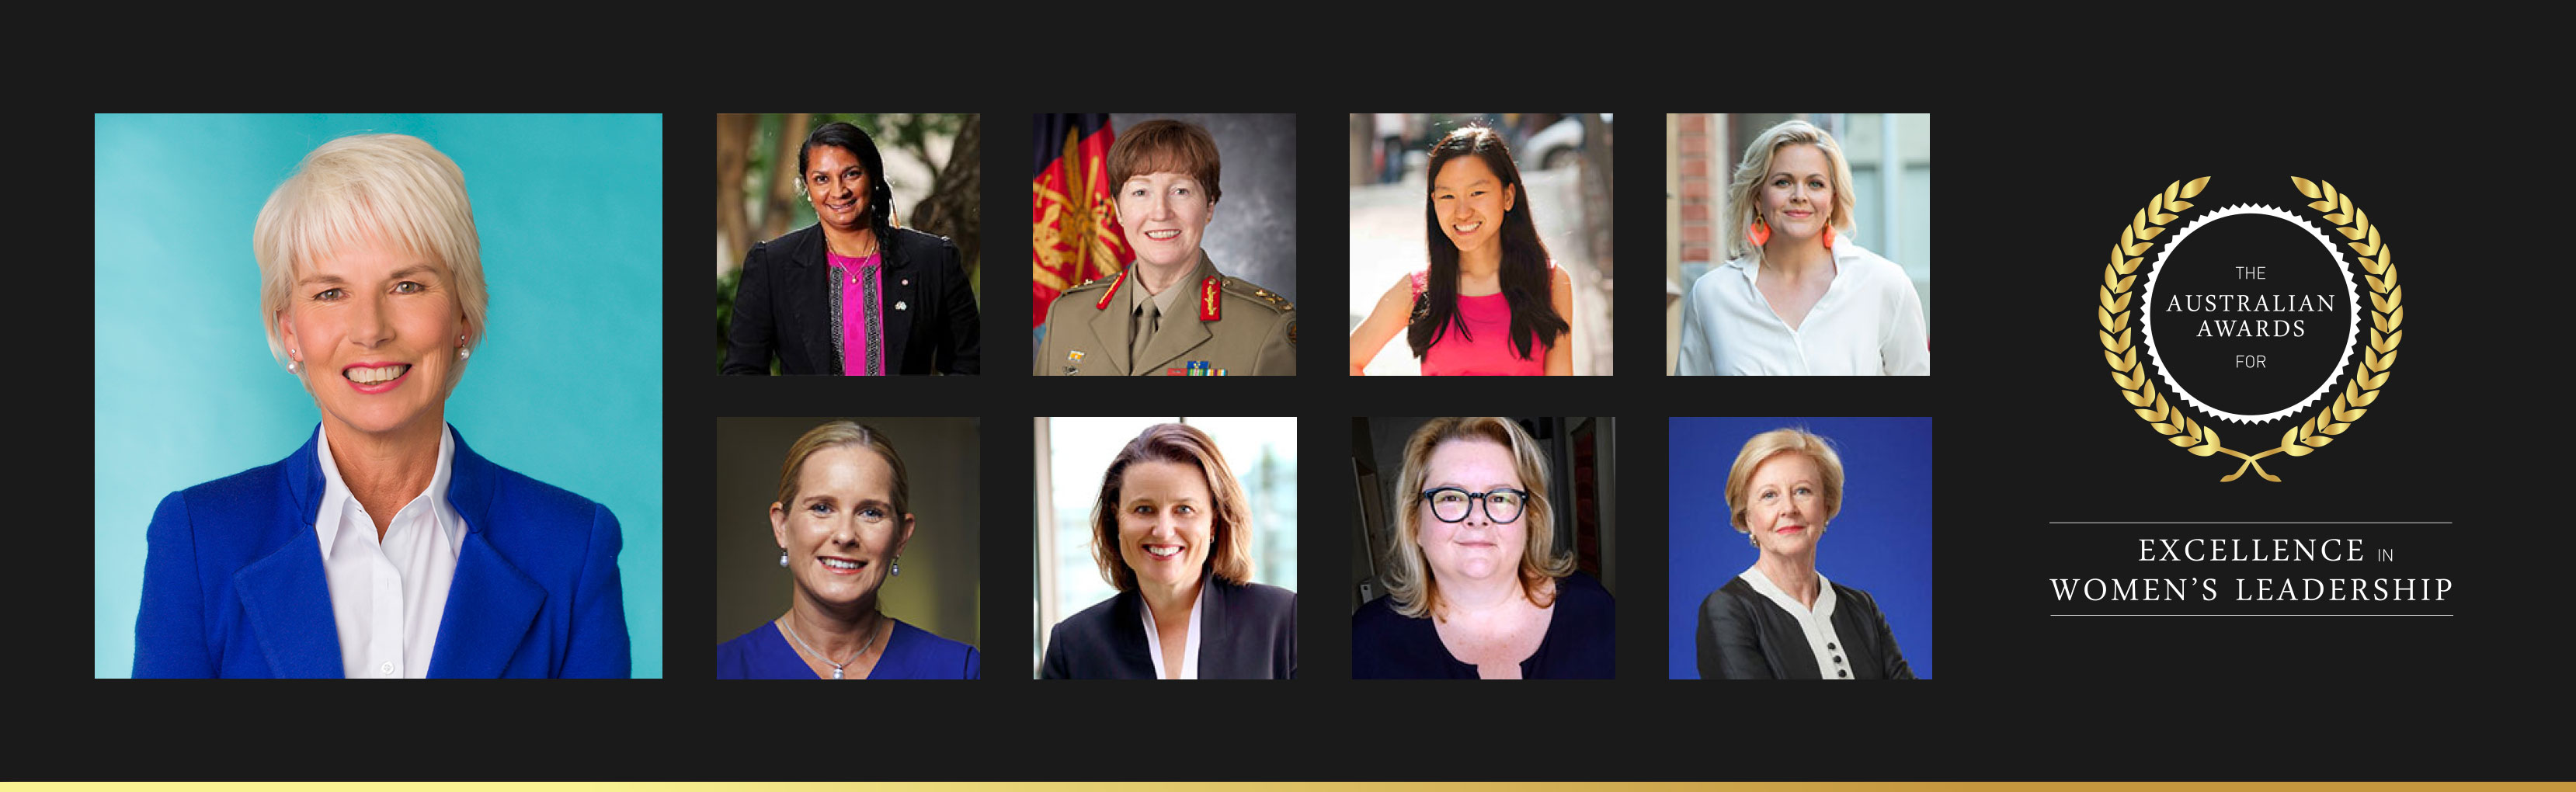 Headshots of Gail Kelly, Nova Peris OAM, Major General Simone Wilkie, Marita Cheng, Taryn Brumfitt, Dr Kate Stannage, Dr Kirstin Ferguson, Magda Szubanski and Gillian Triggs alongside an awards logo